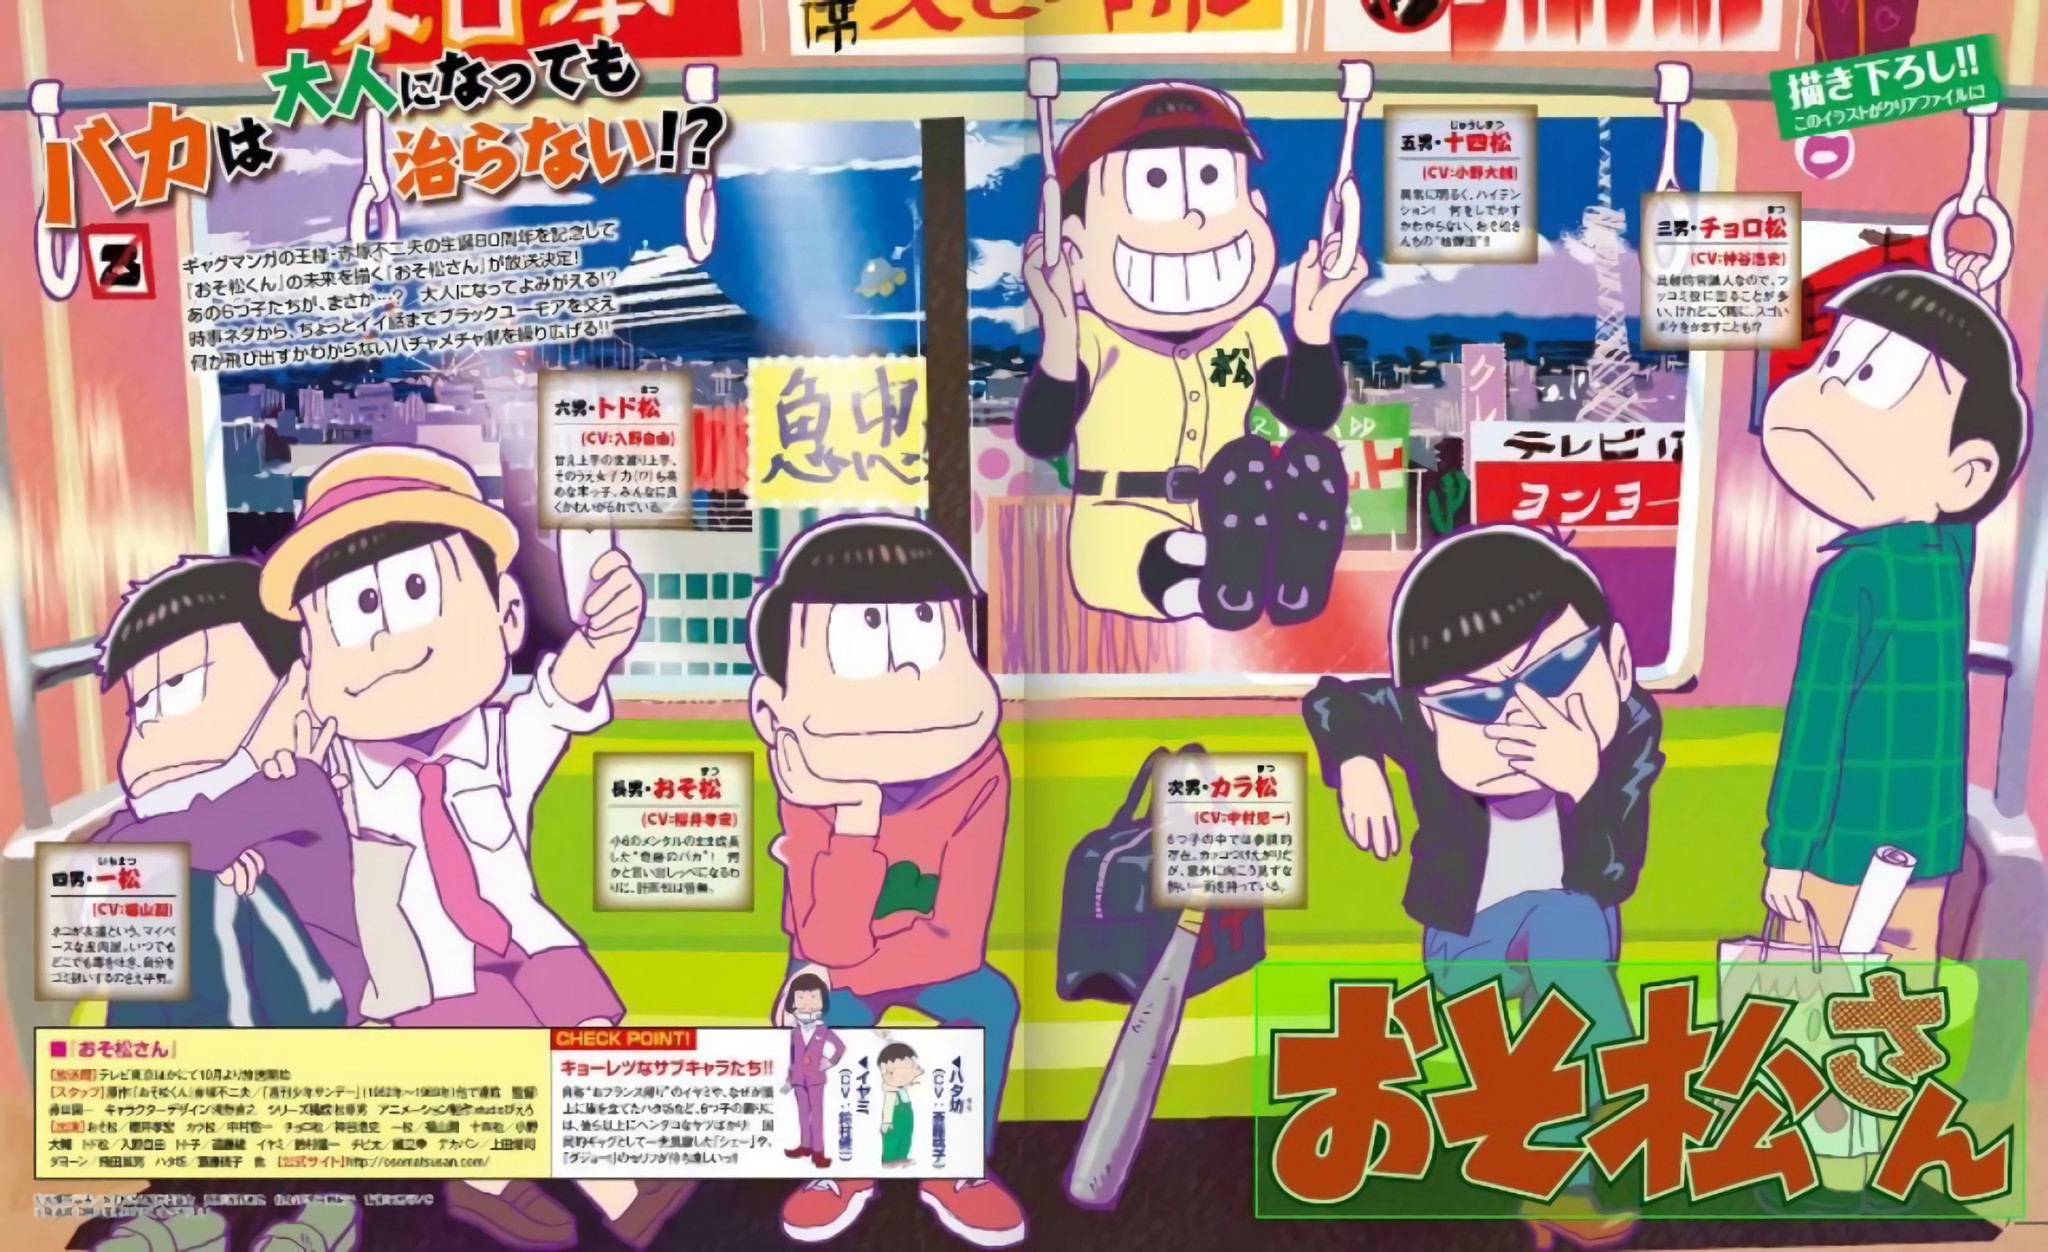 Osomatsu images Official art HD wallpaper and background photos